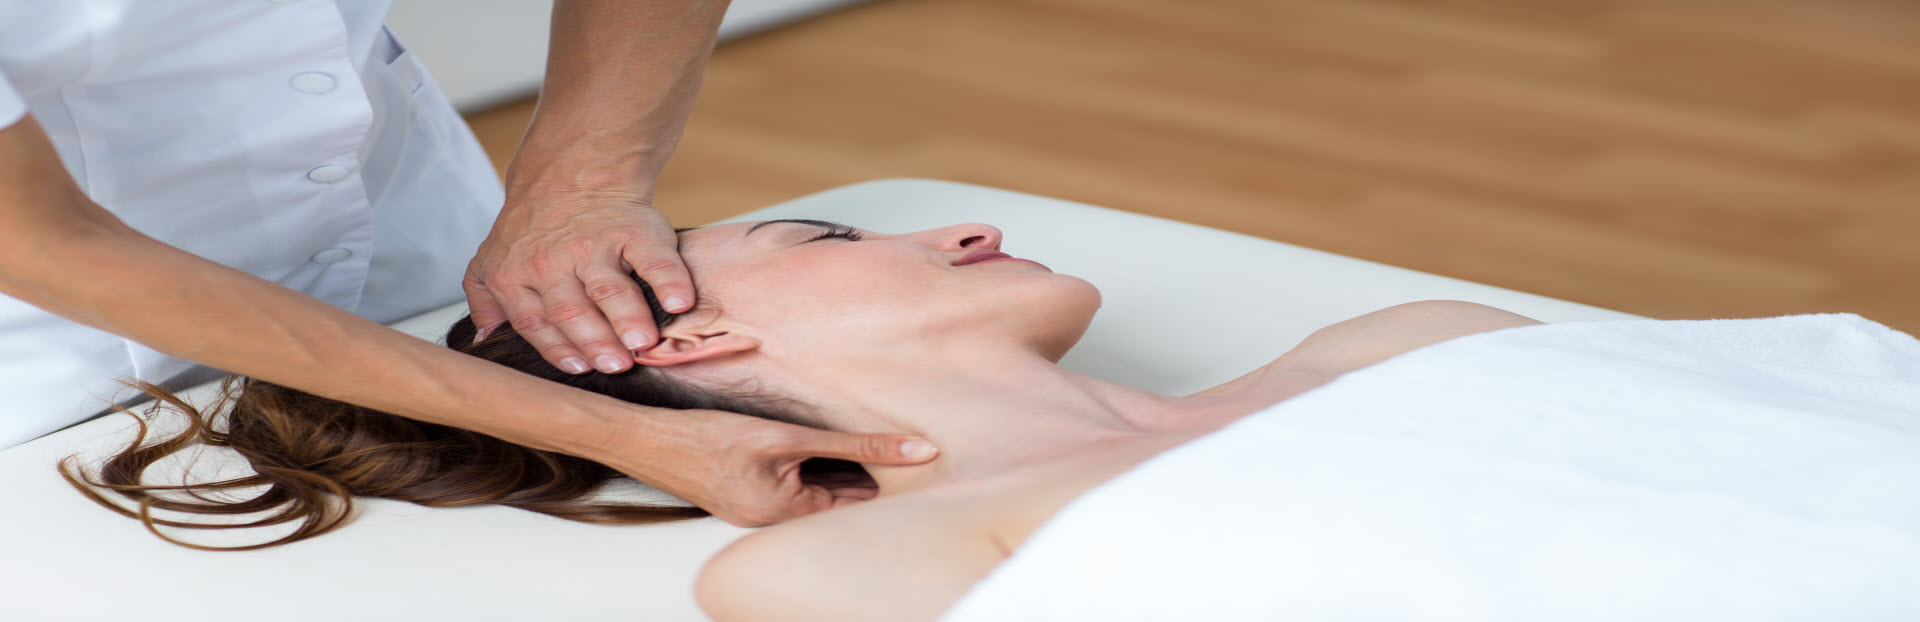 The Best Chiropractic Services in Greenwood Village